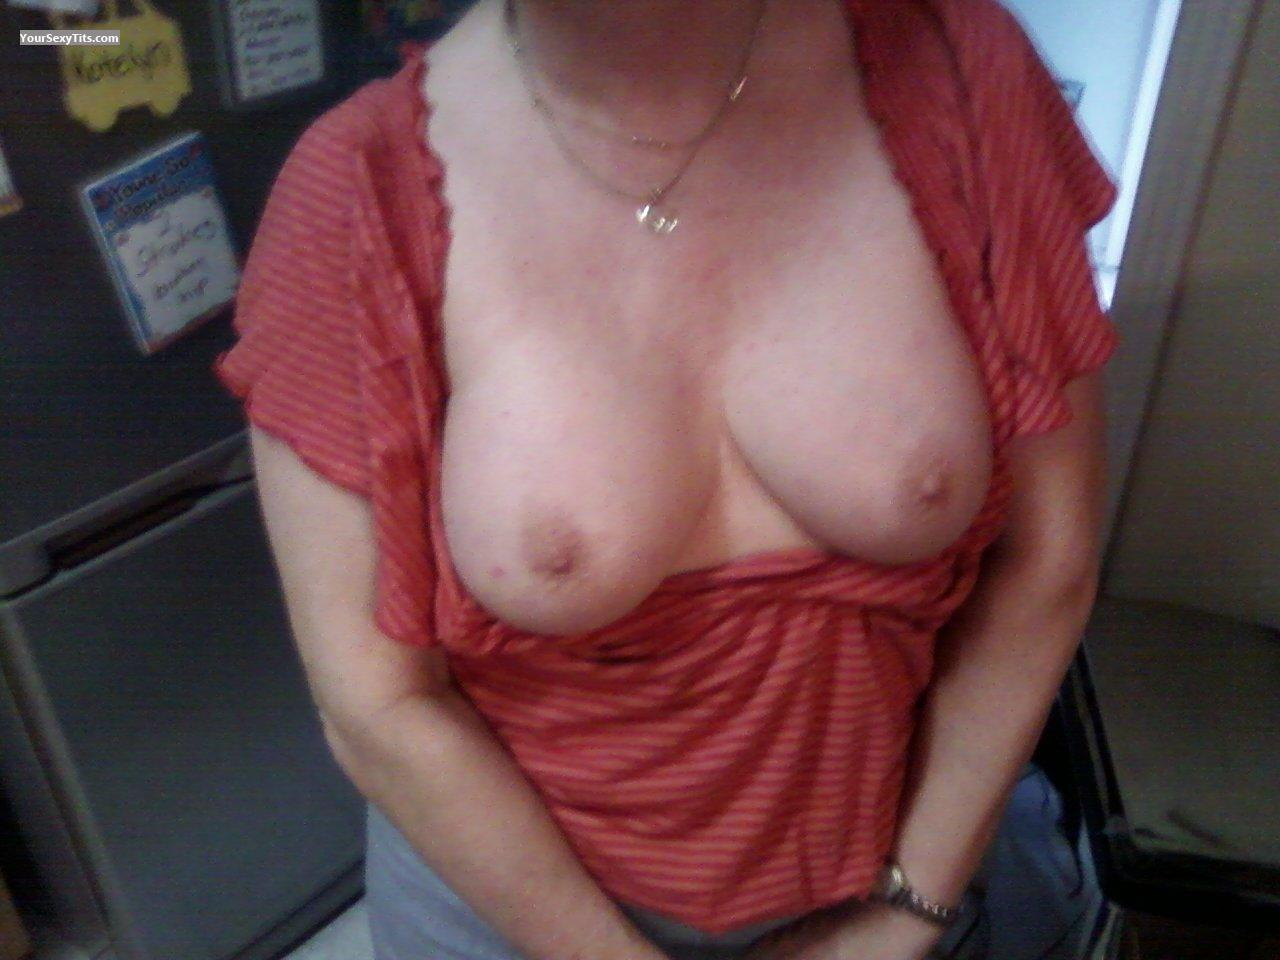 Tit Flash: Medium Tits - Liz from United States